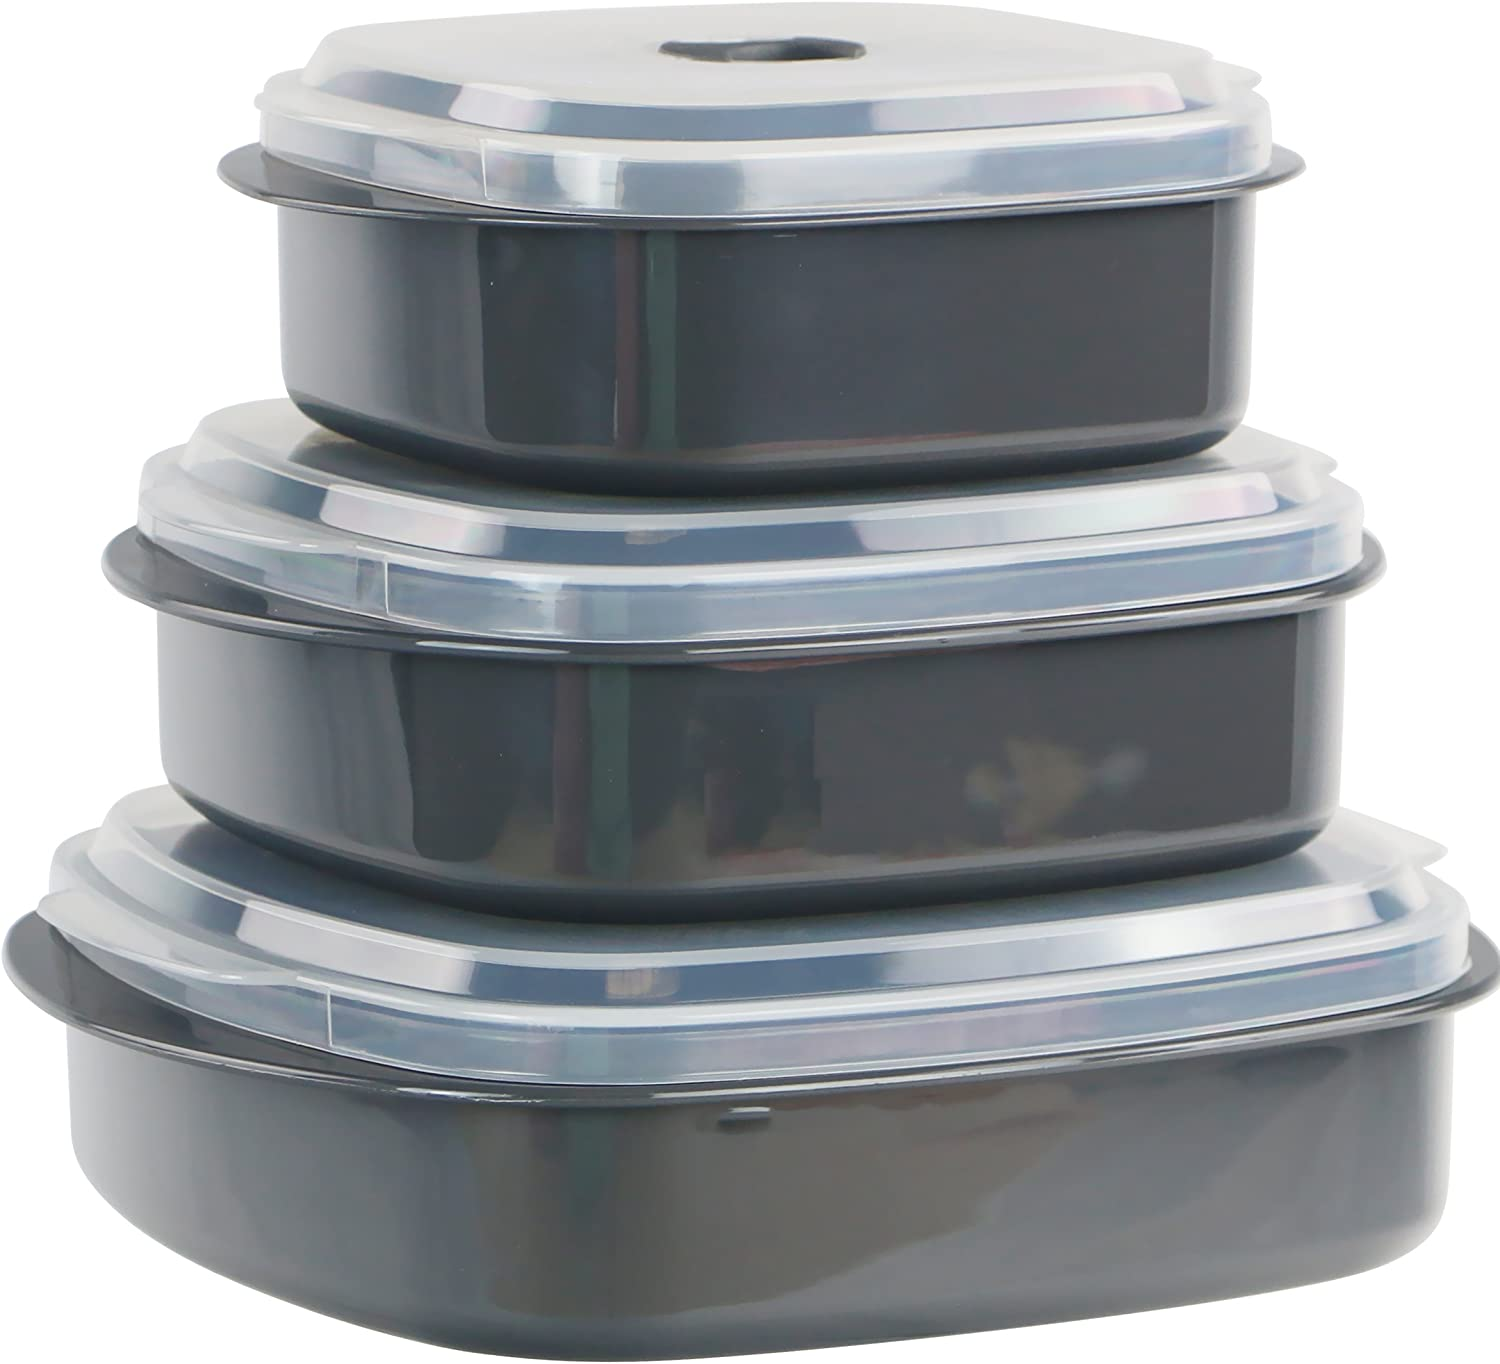 Reston Lloyd Calypso Basics 3-Piece Microwave Steamer Set Grey